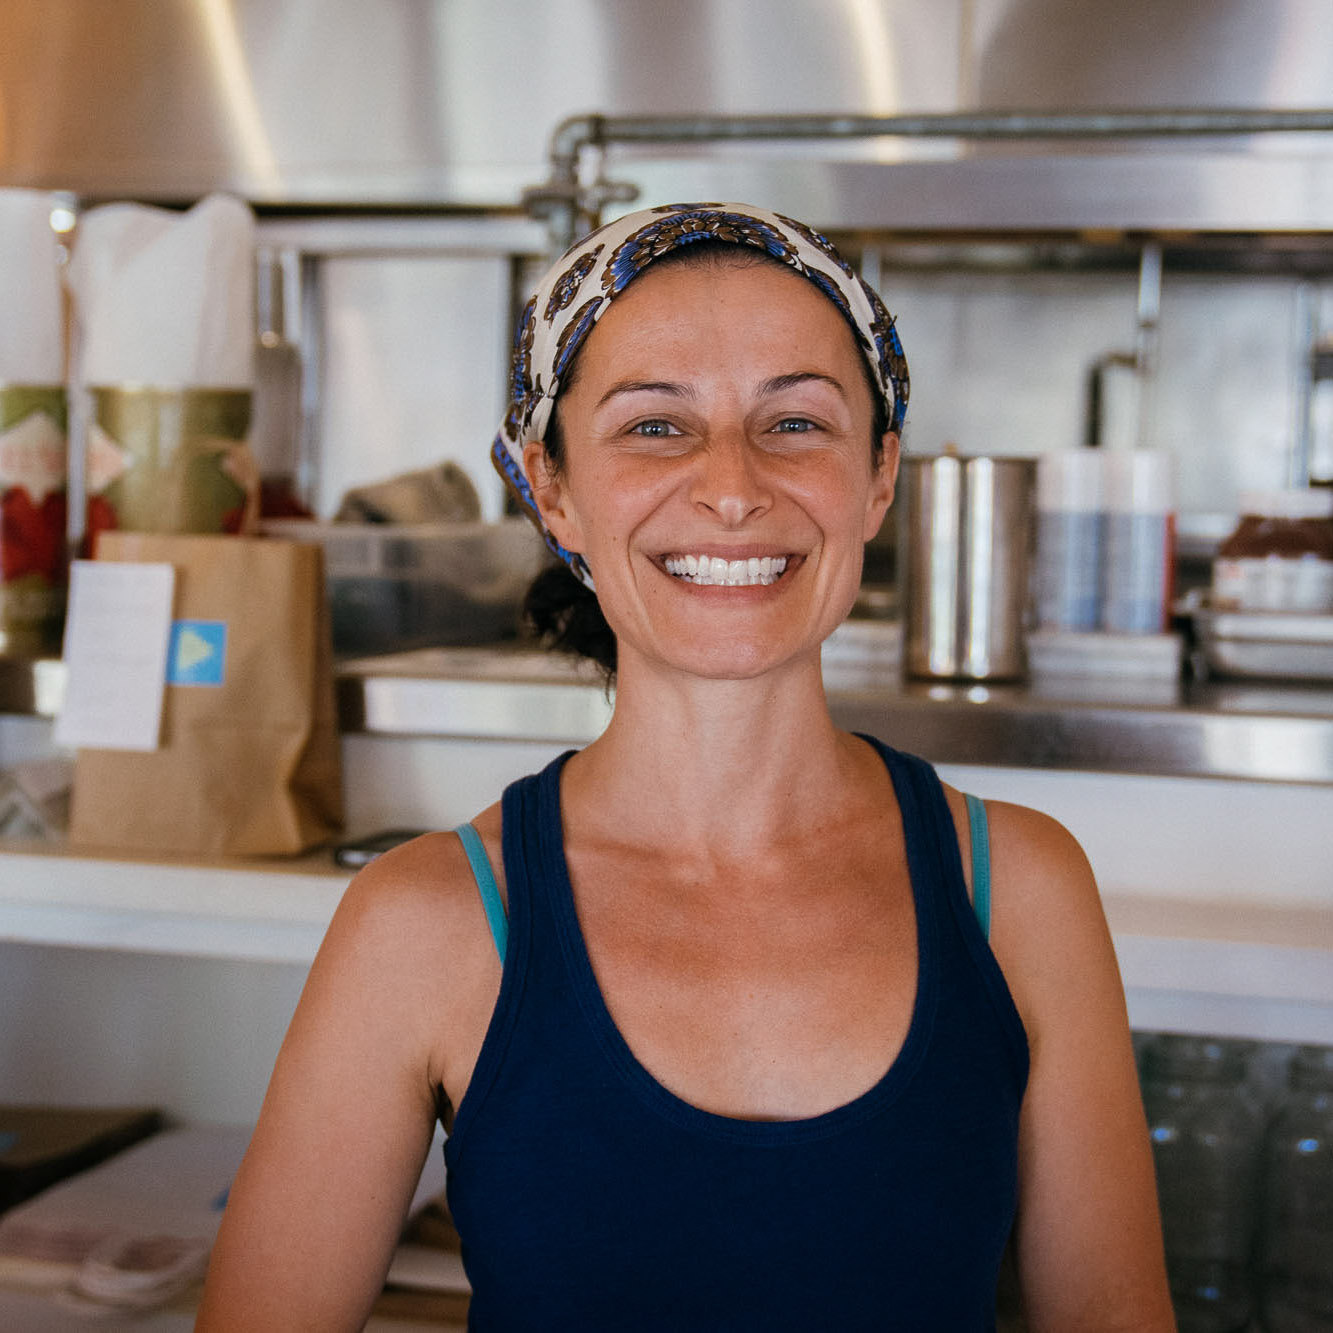 Bobbi, Rachel and Leah Corbin from Knead Bakery in Ojai, California share the story of launching their bakery, their advice for others and where they love to eat and drink in town as part of the Dirt Road Travels city travel guide for Ojai.